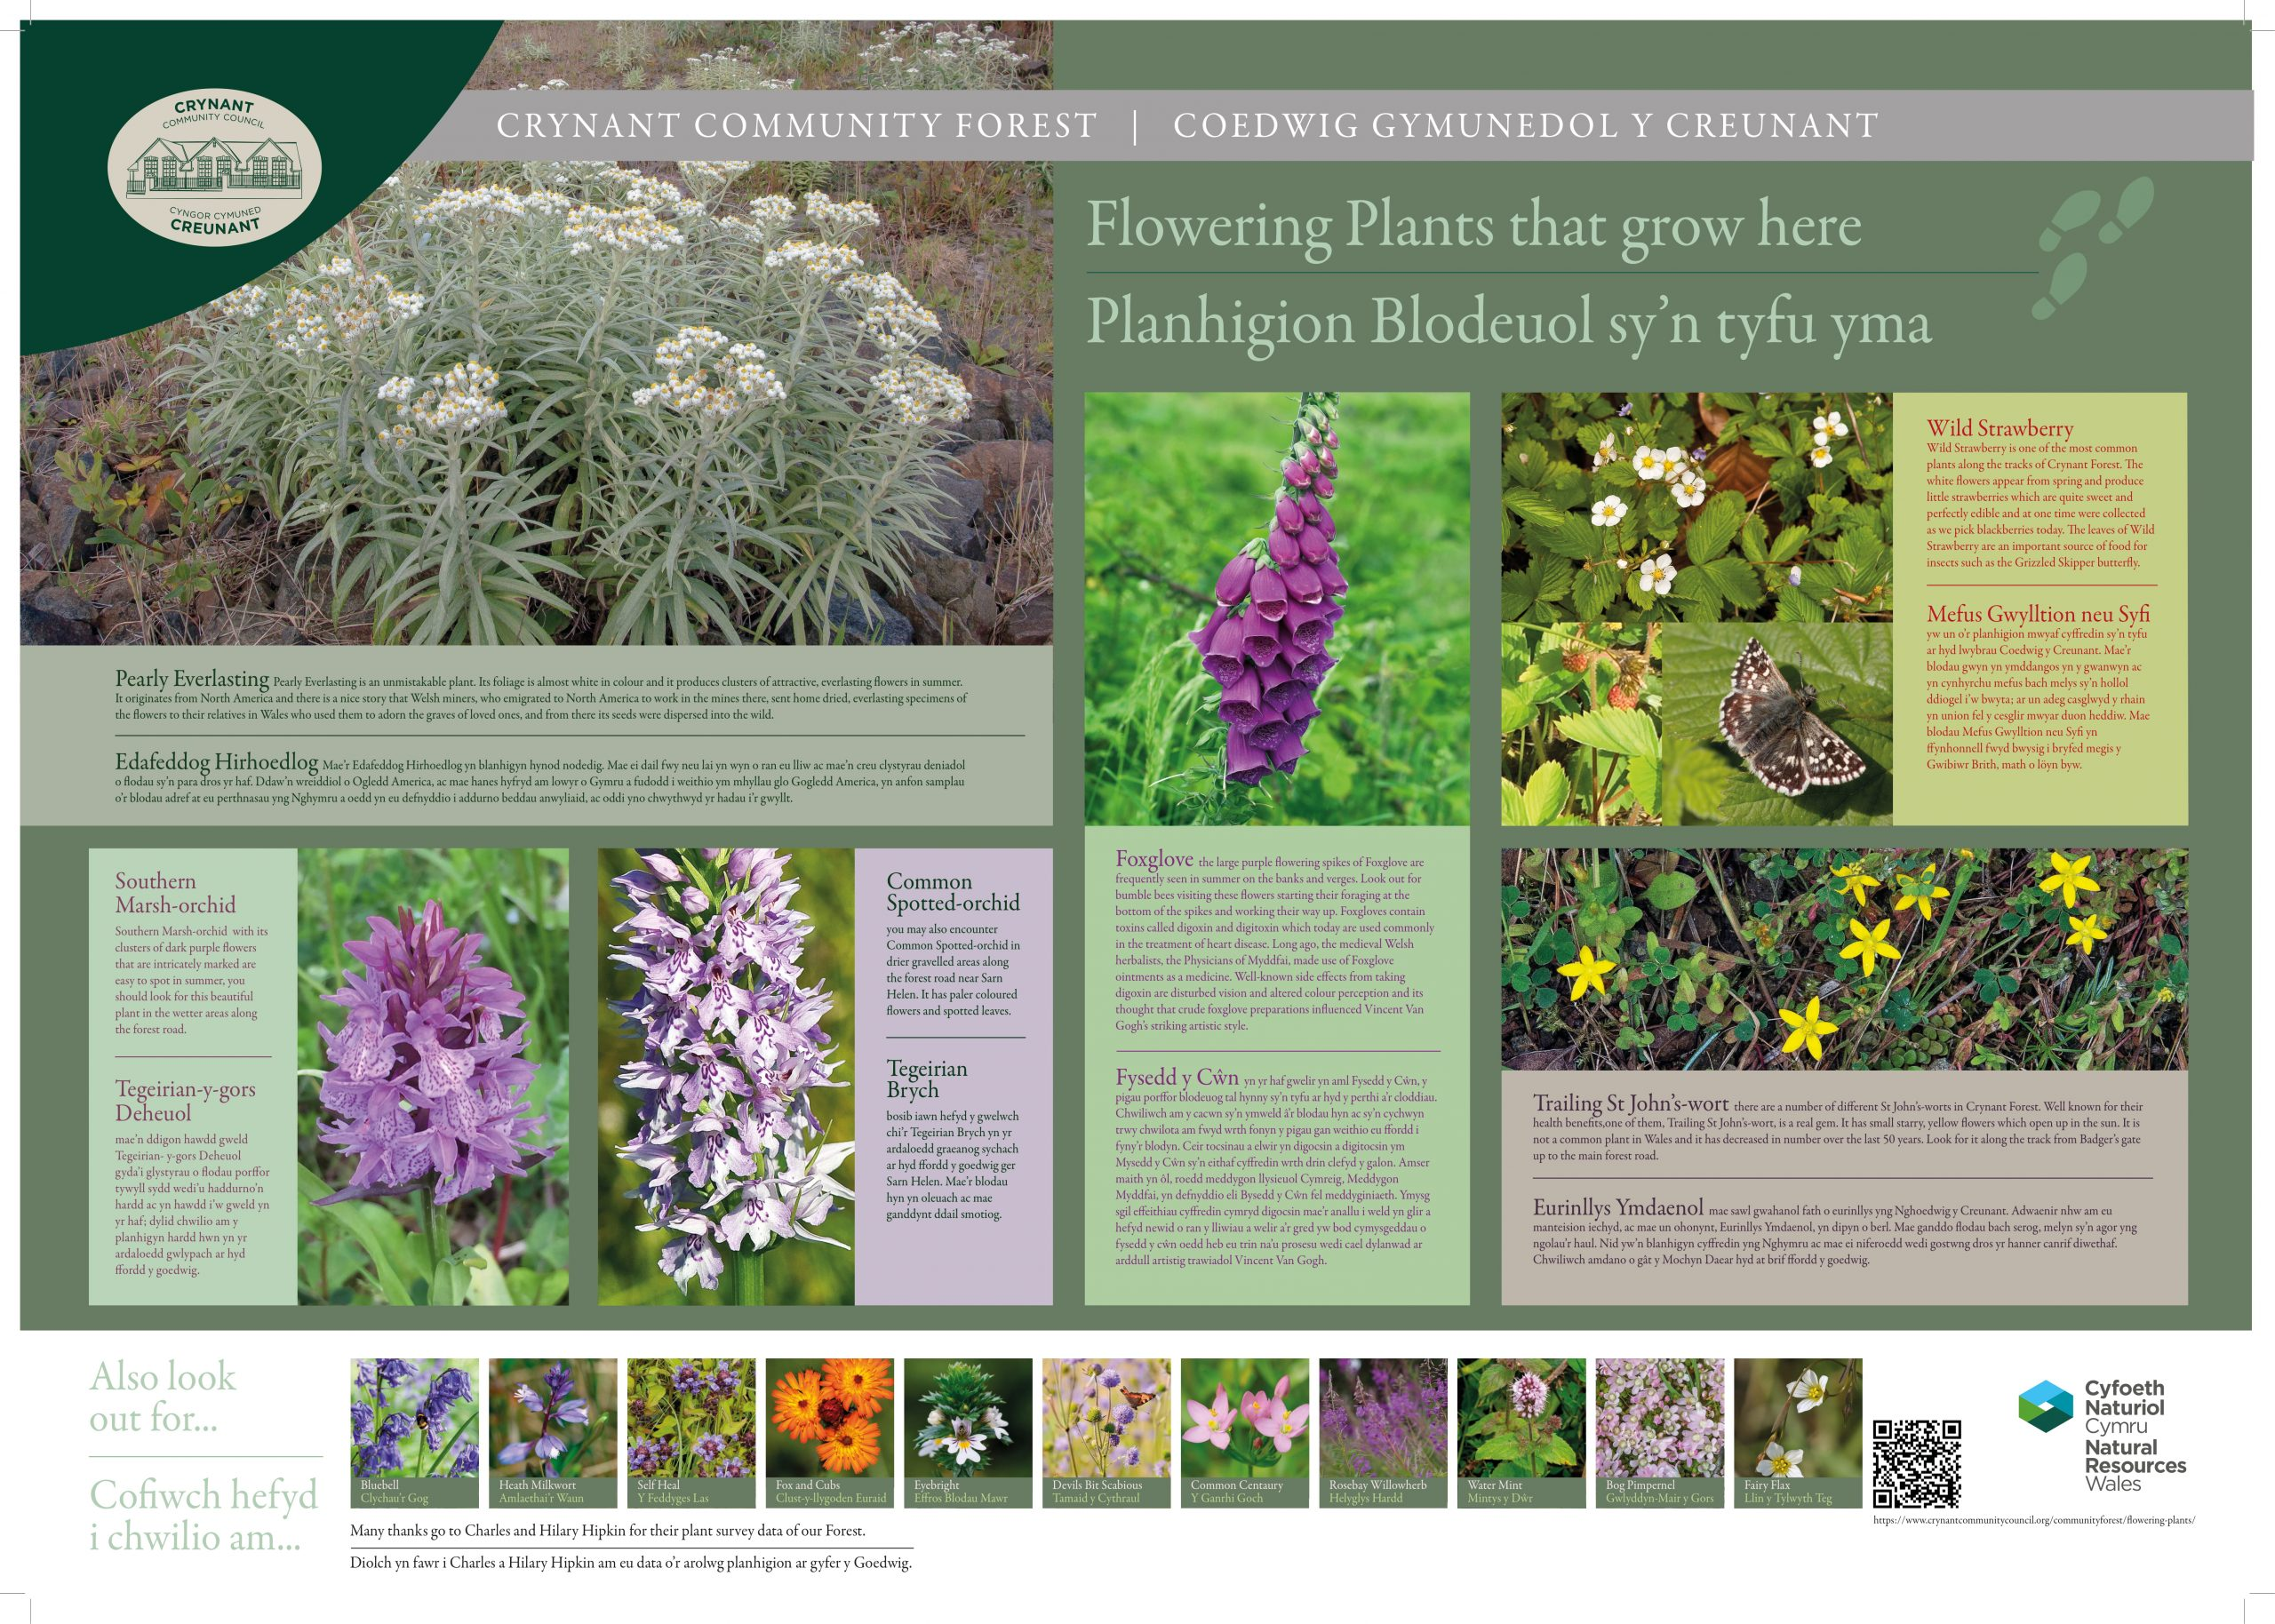 Image showing a selection of flowering plants that grow here. The panel comprises of seven main images: Pearly everlasting - a silvery leafed plant with small white flowers; Southern Marsh Orchid, a bluebell like purple plany with fine spotted orchid flowers; Common Spotted orchid, a taller blue bell like plant in lighter purple with darker finely spotted flowers; Foxglove, a tall plant with bell like purple flowers; wild strawberry plant with small while flowers and accompanying photo of a butterfly; and trailing St John's Wart with smaller star shaped yellow flowers. The panel also lists various other plants that may be found in a bottom row of smaller pictures. These are described in the page text.